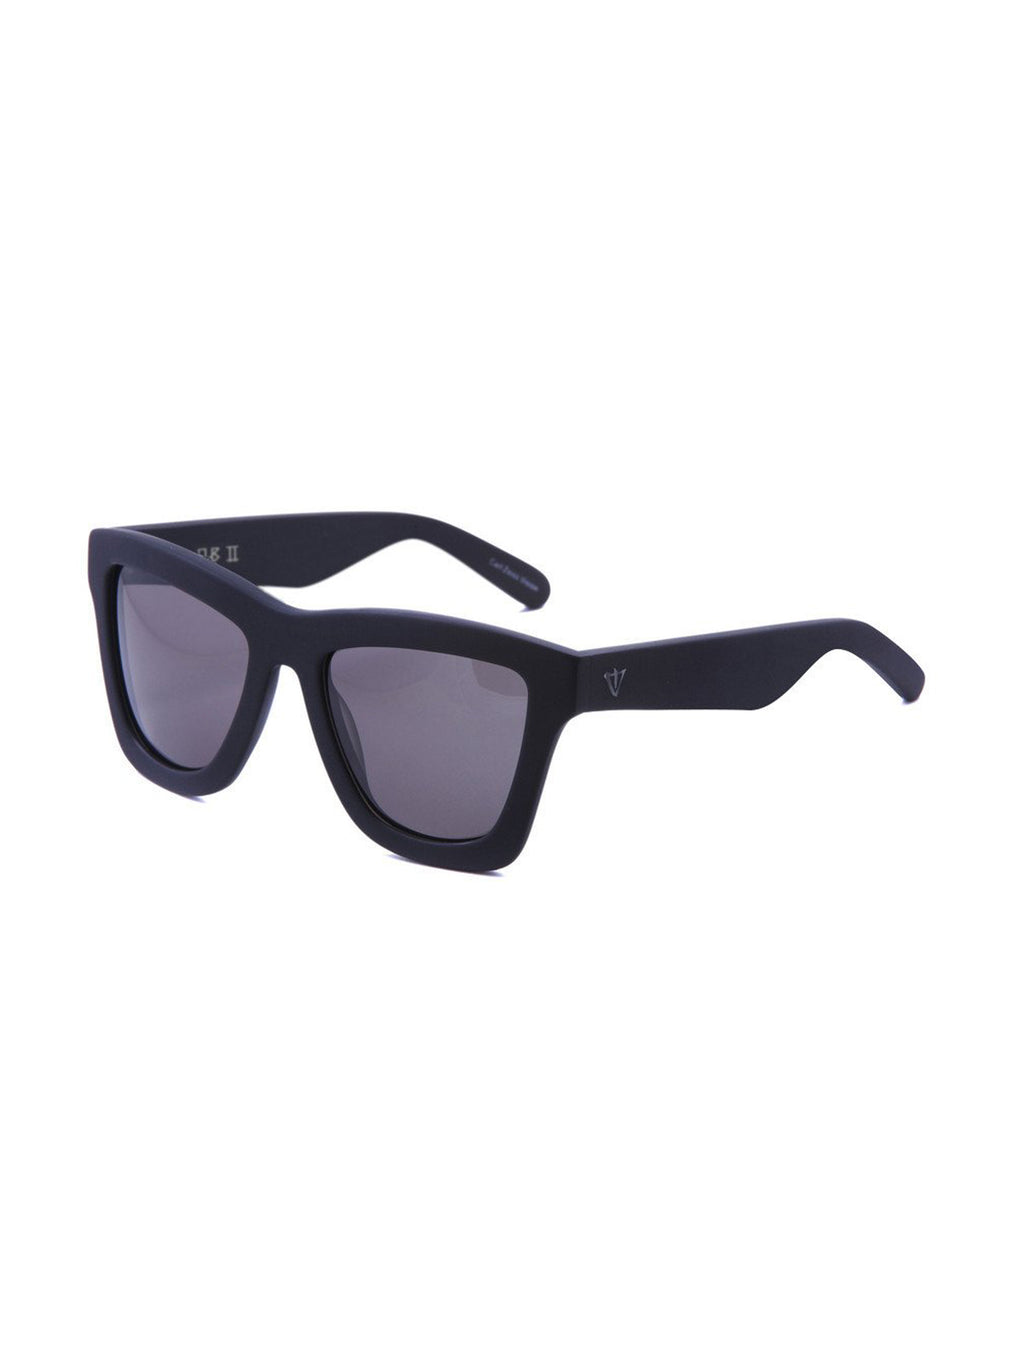 VALLEY EYEWEAR DB II | Matte Black / Black Lens